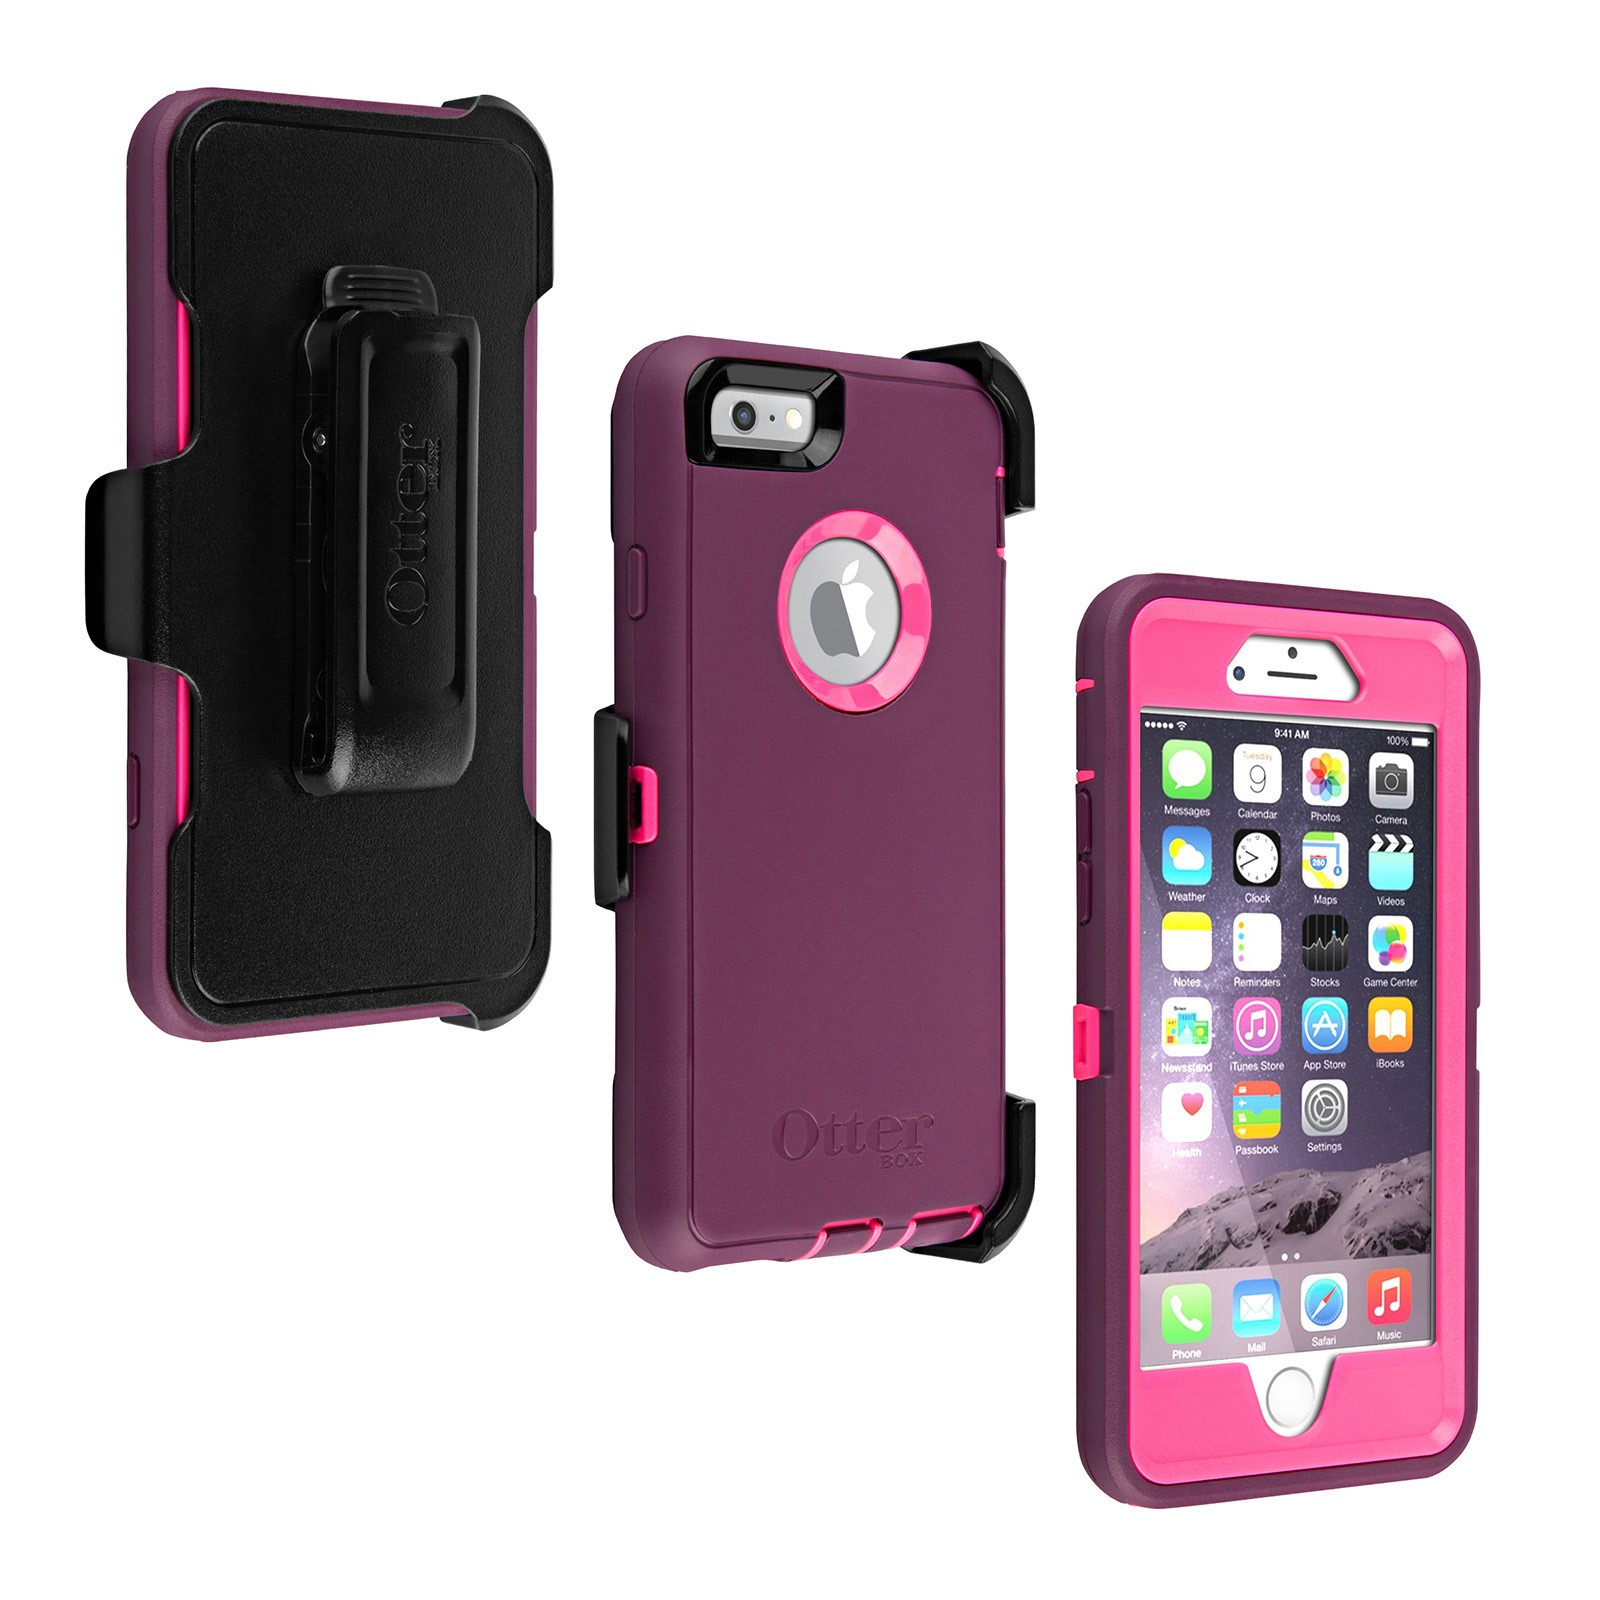 new concept 4c942 dbc29 OtterBox Defender Series Case for iPhone 6